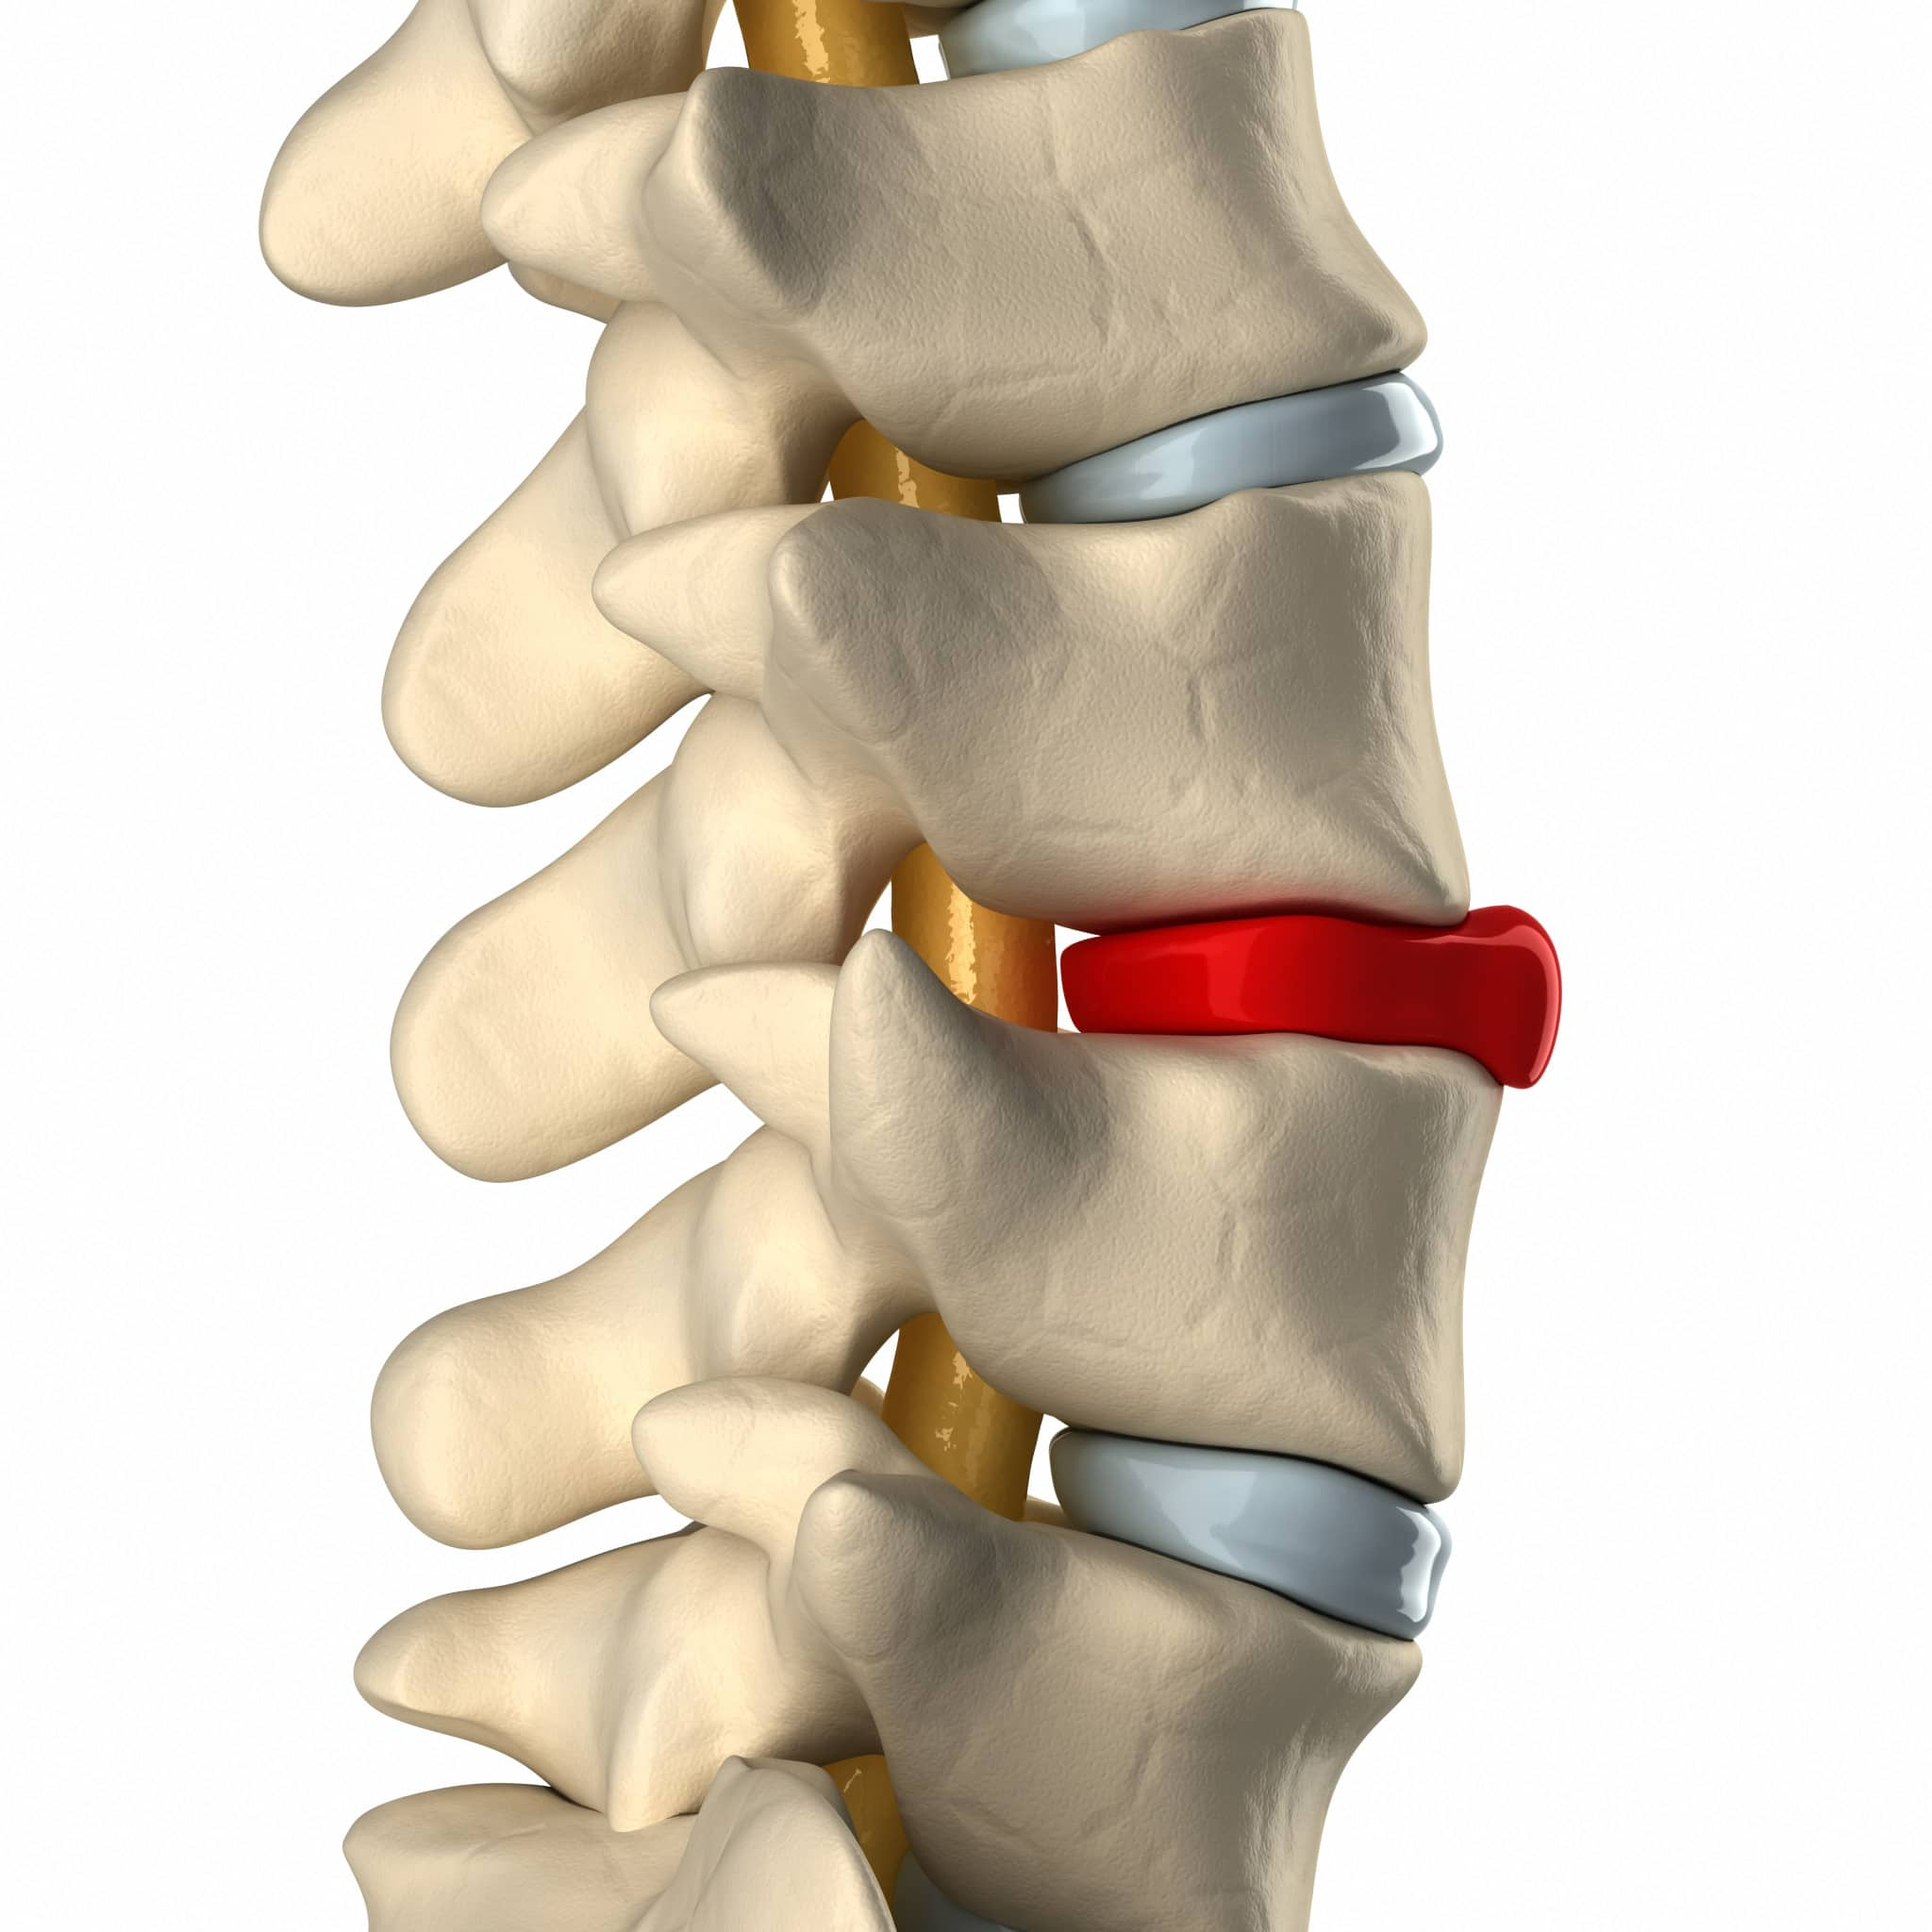 Causes and Treatments of Herniated Discs